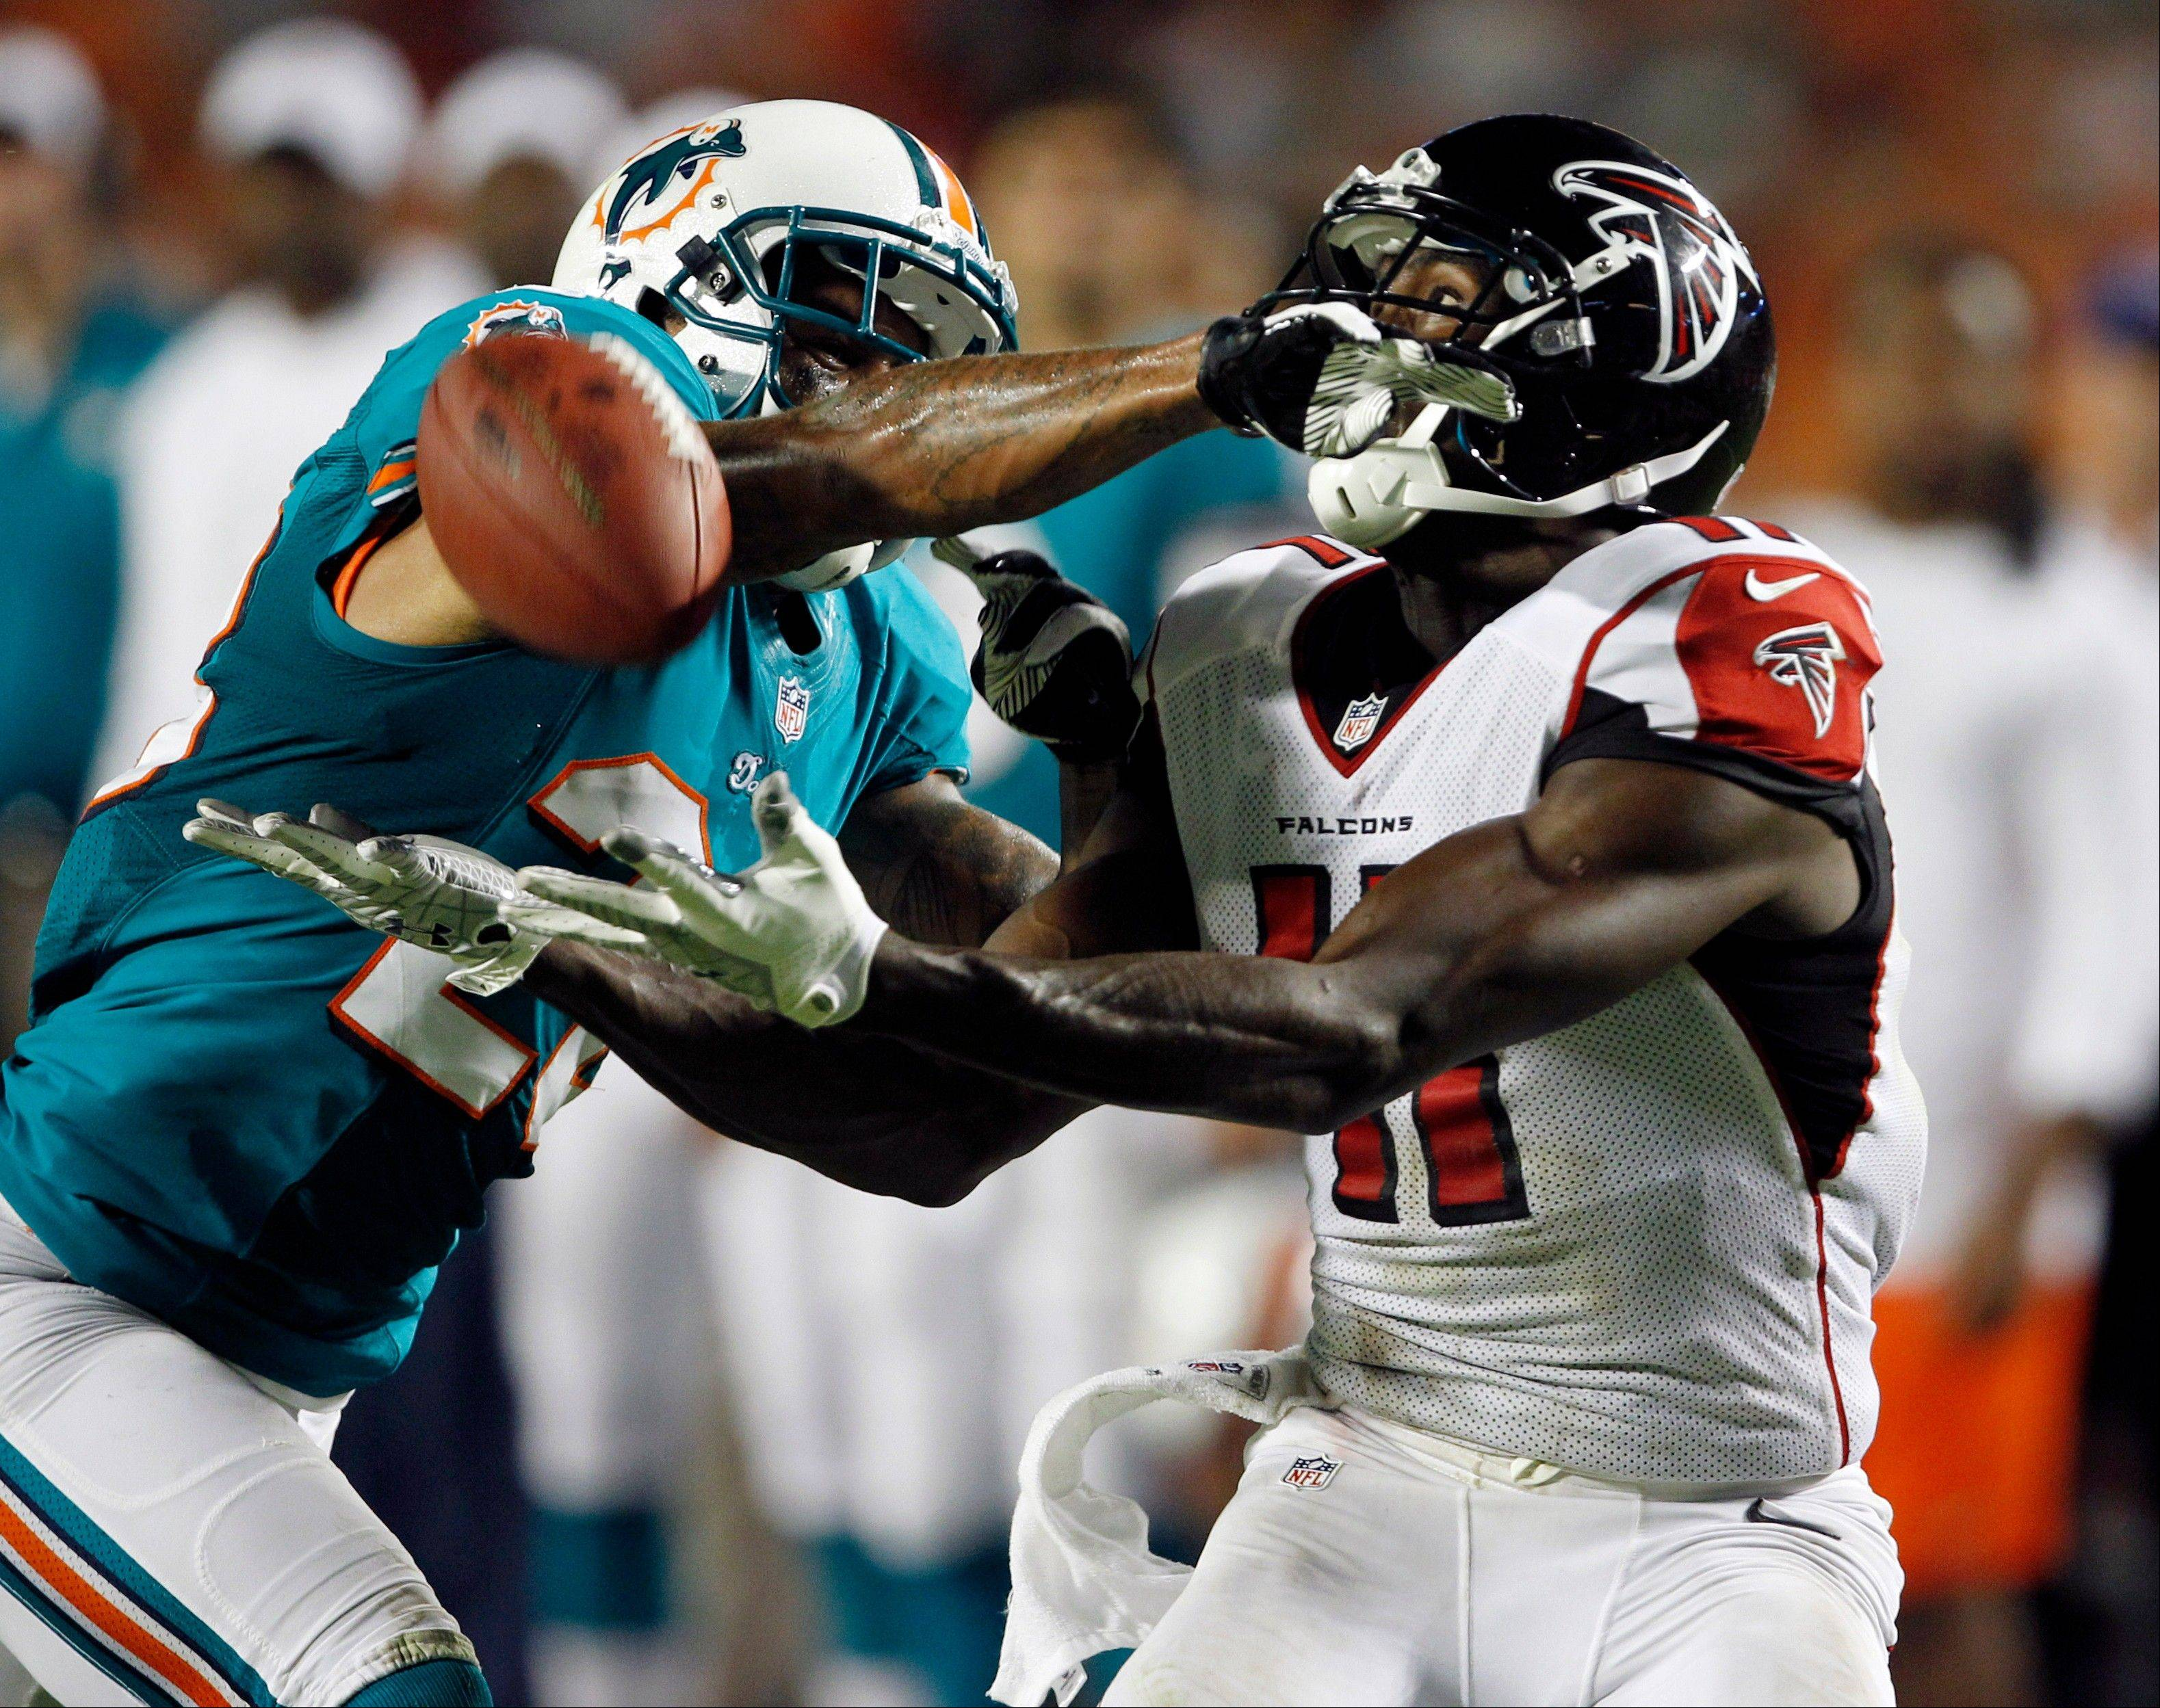 Julio Jones is poised for a huge season in Atlanta. Fantasy football writer John Dietz believes Jones will finish second among wide receivers when the season is over.